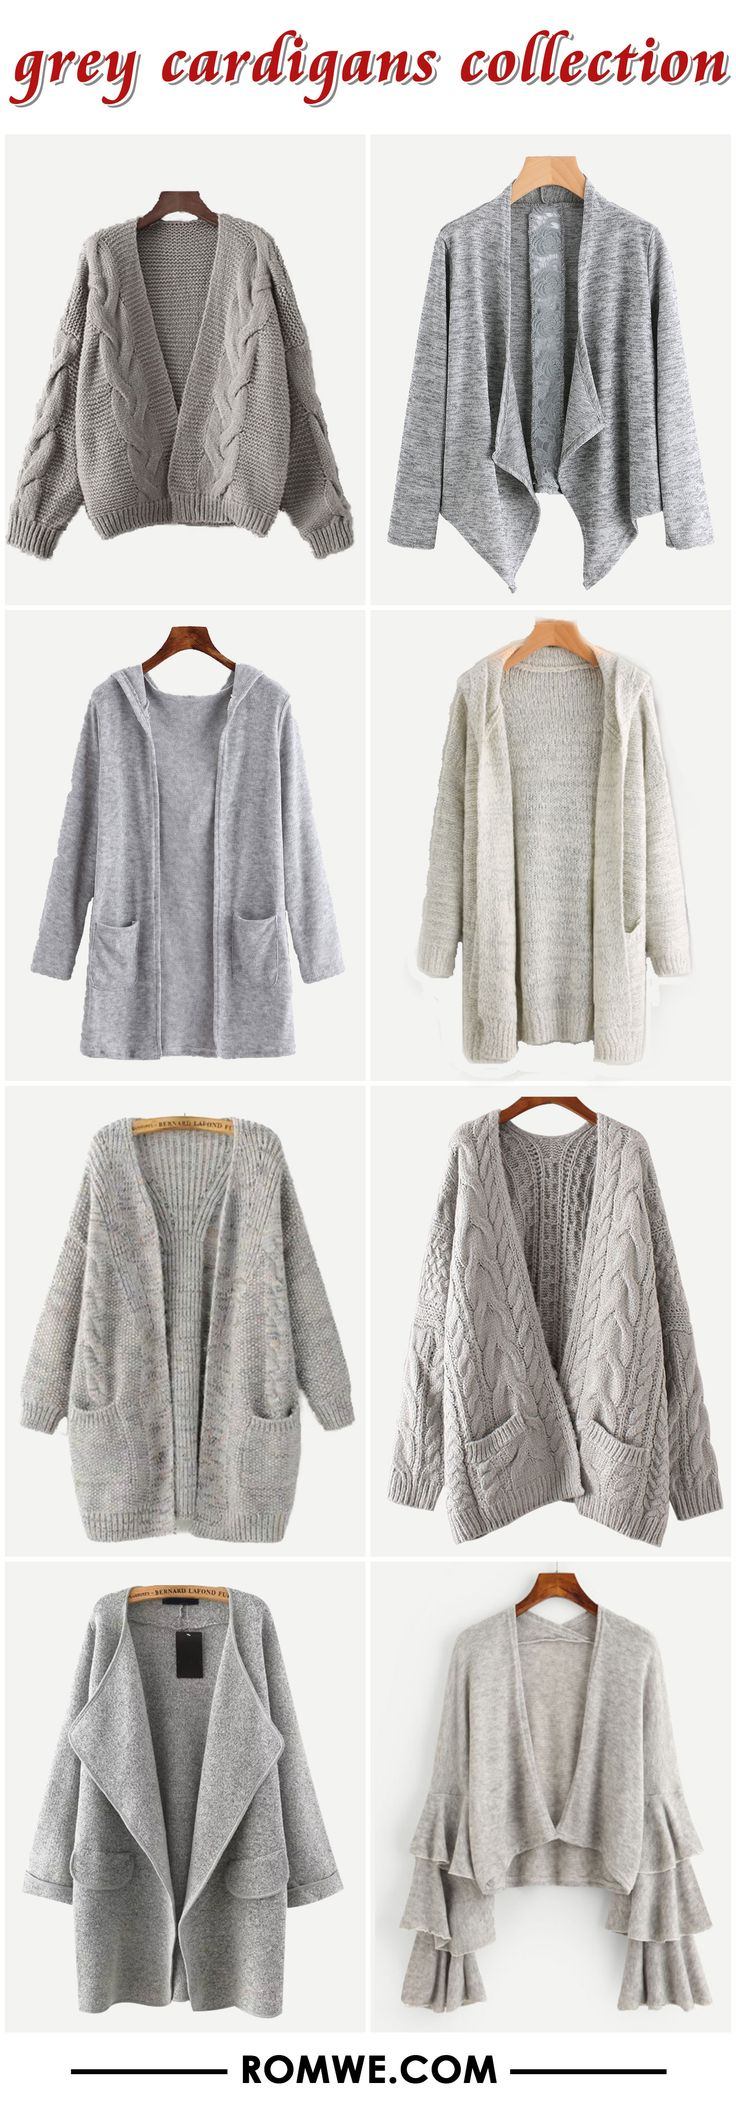 grey cardigans from romwe.com